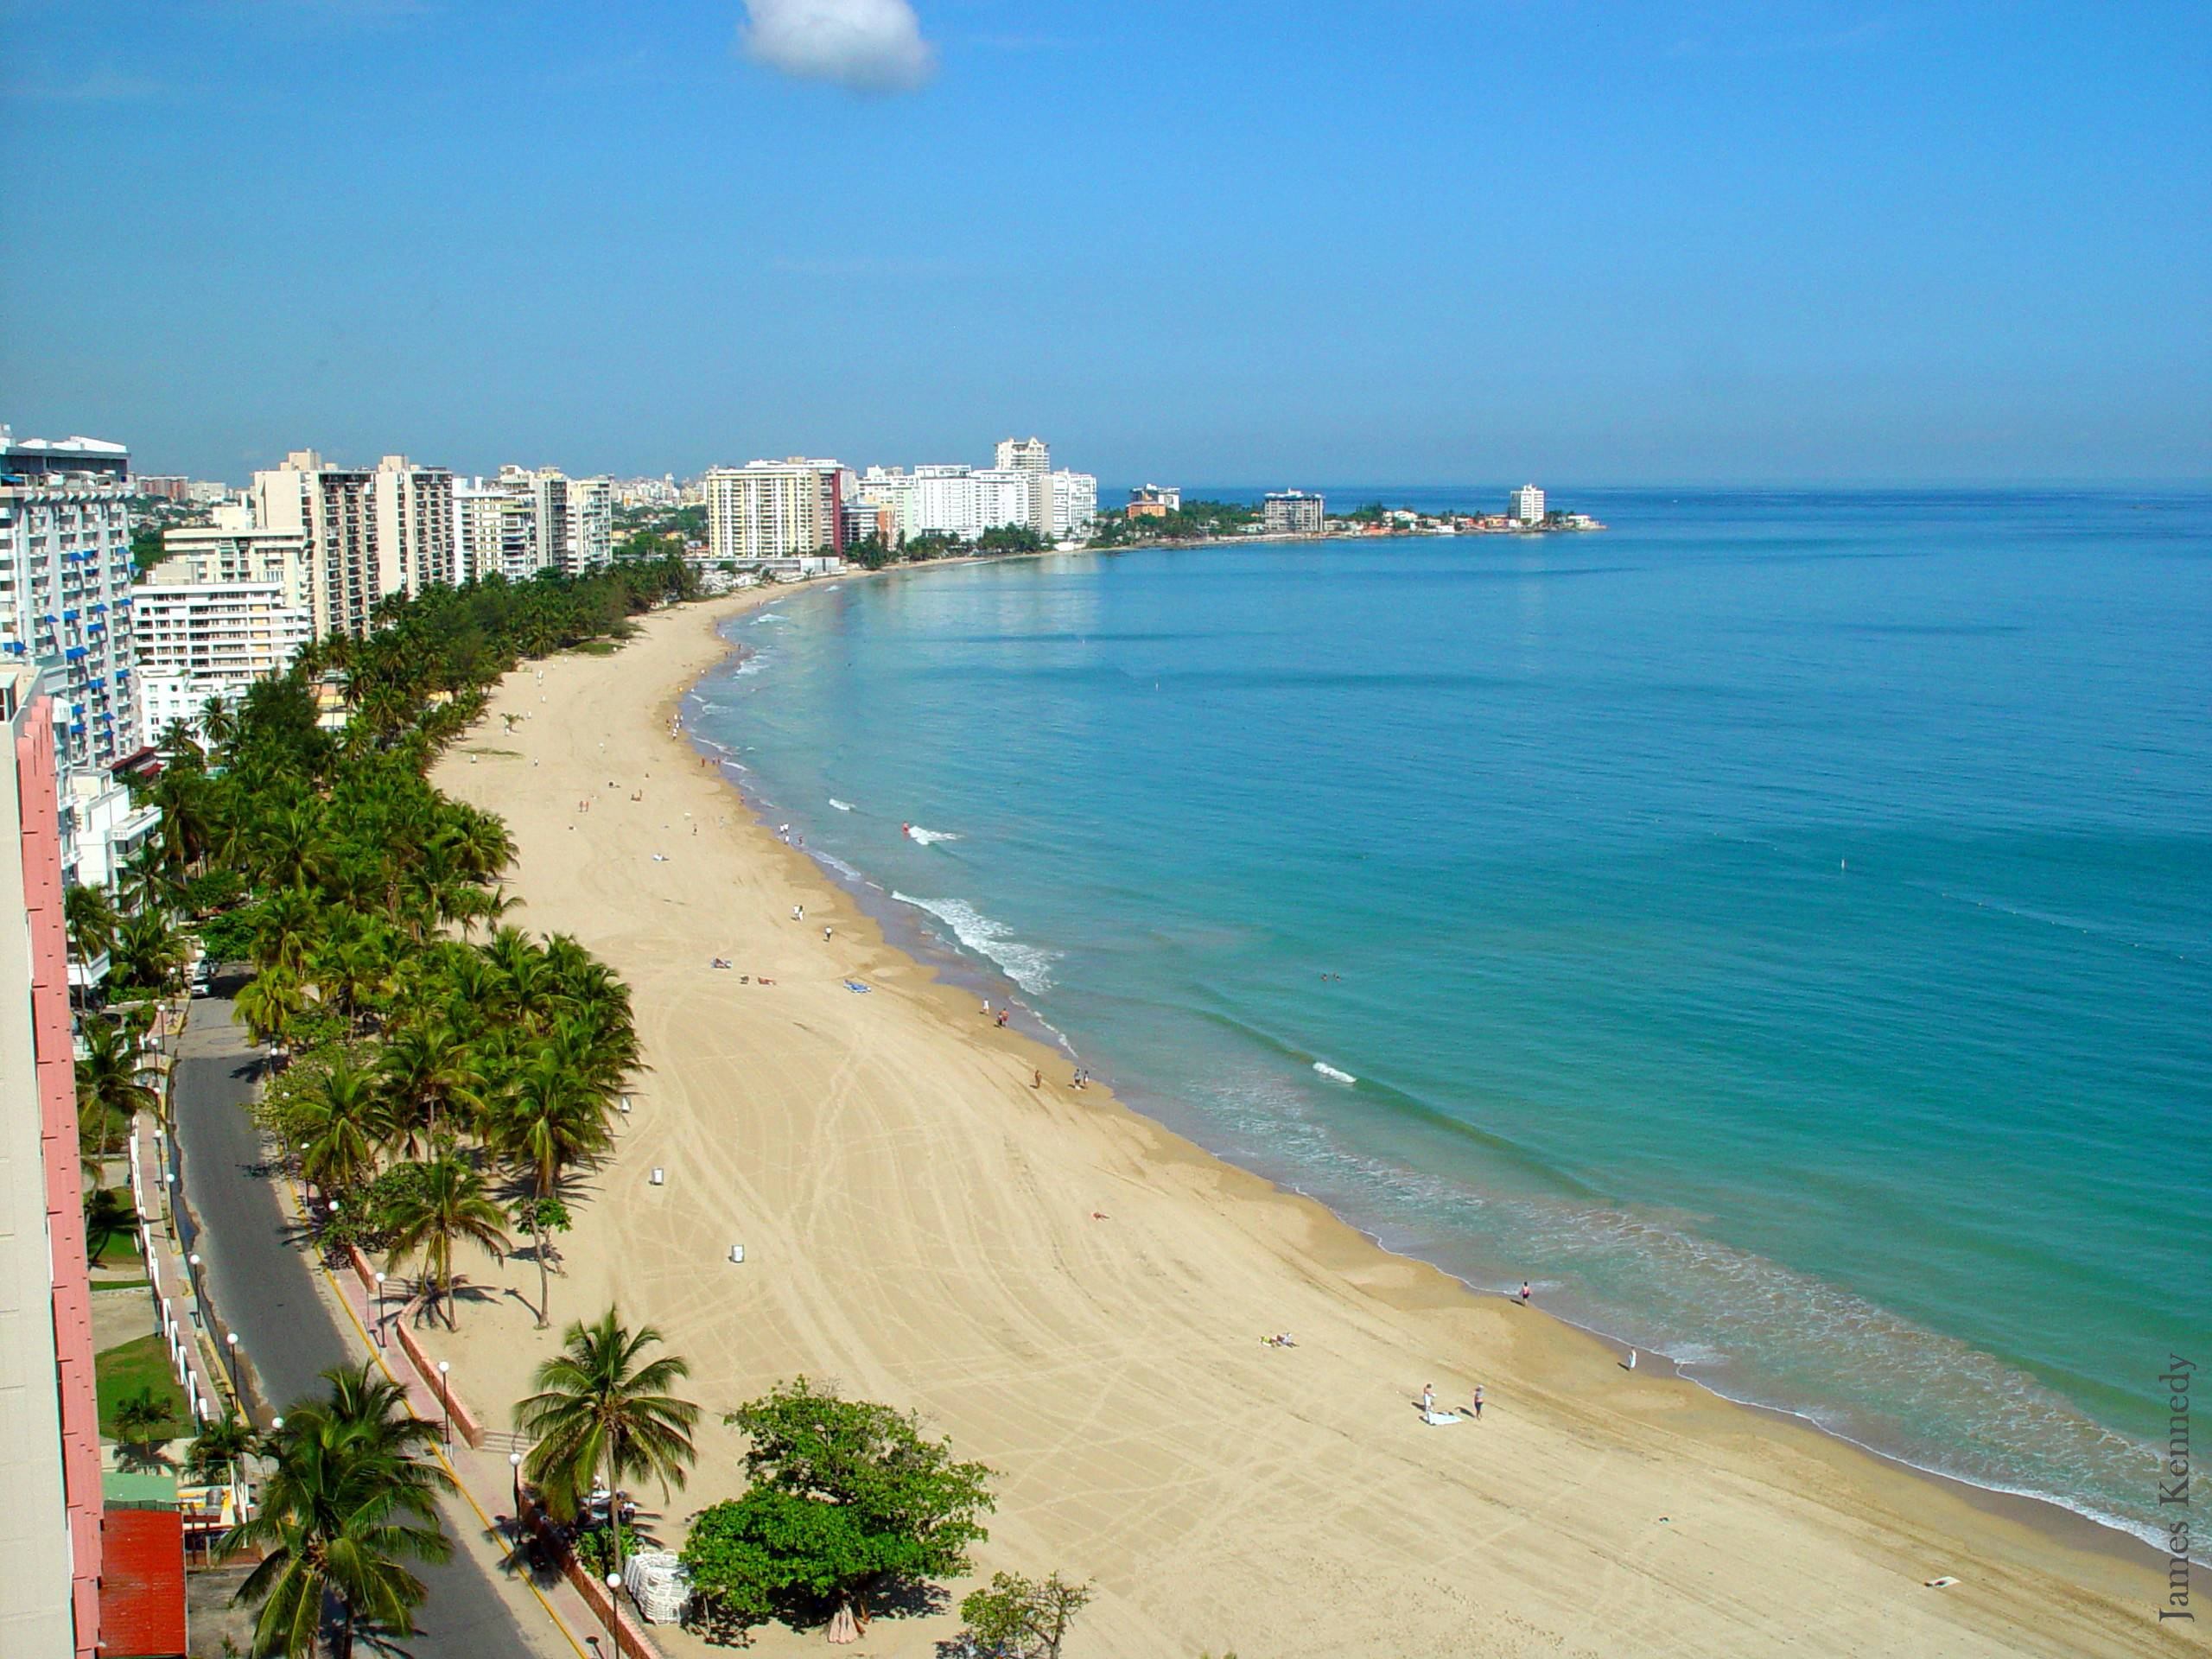 Puerto Rico Beaches File Puerto Rico Beaches 03jpg Wikimedia